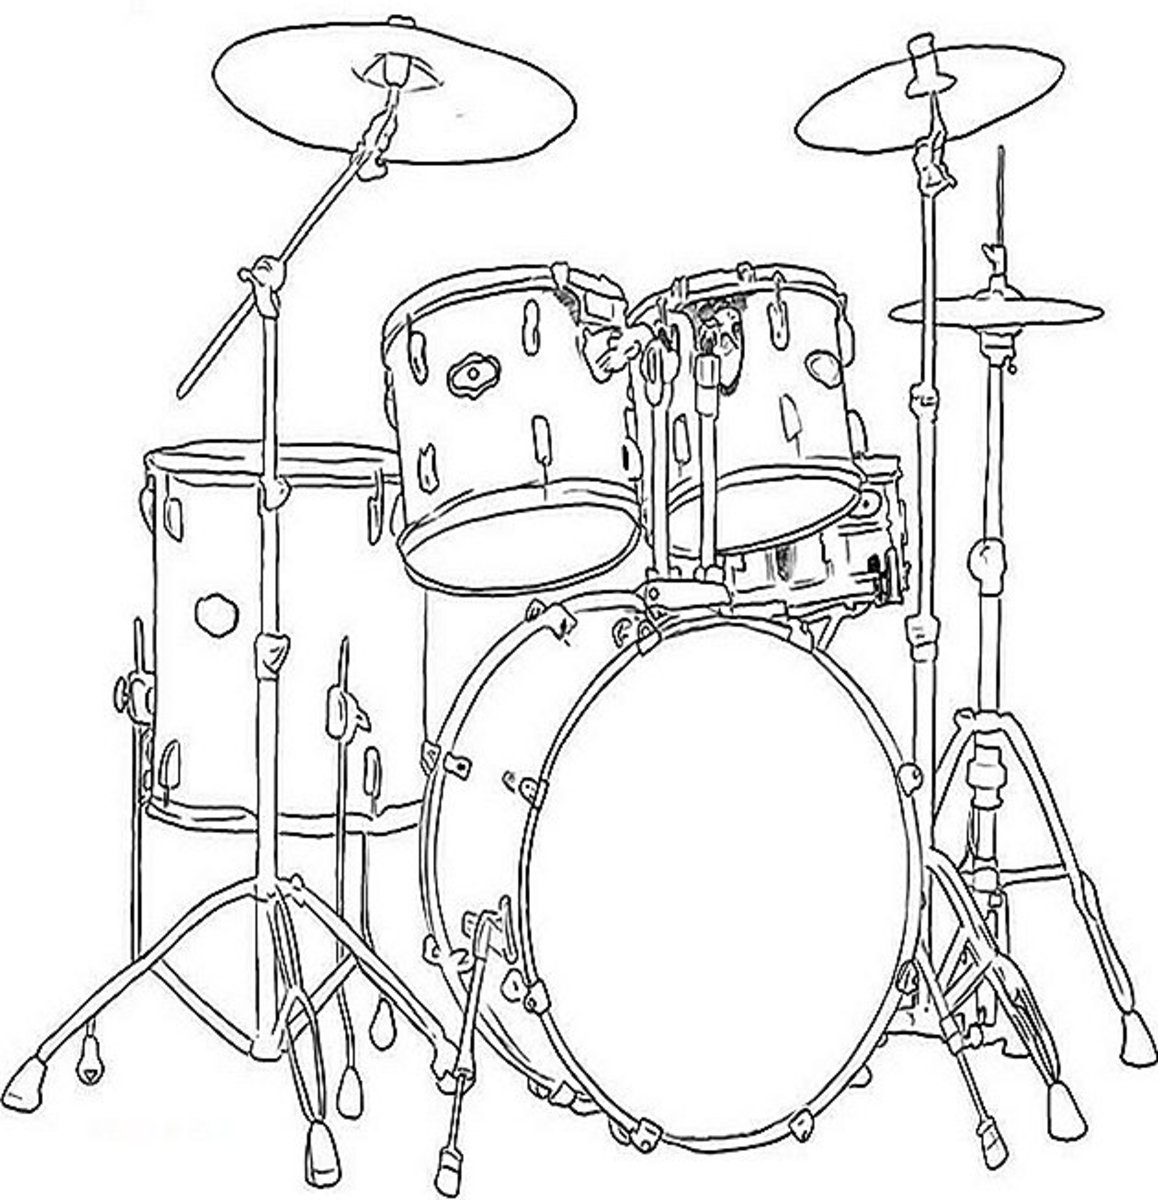 coloring musical instruments drawing musical instruments 147 objects printable coloring pages coloring instruments drawing musical